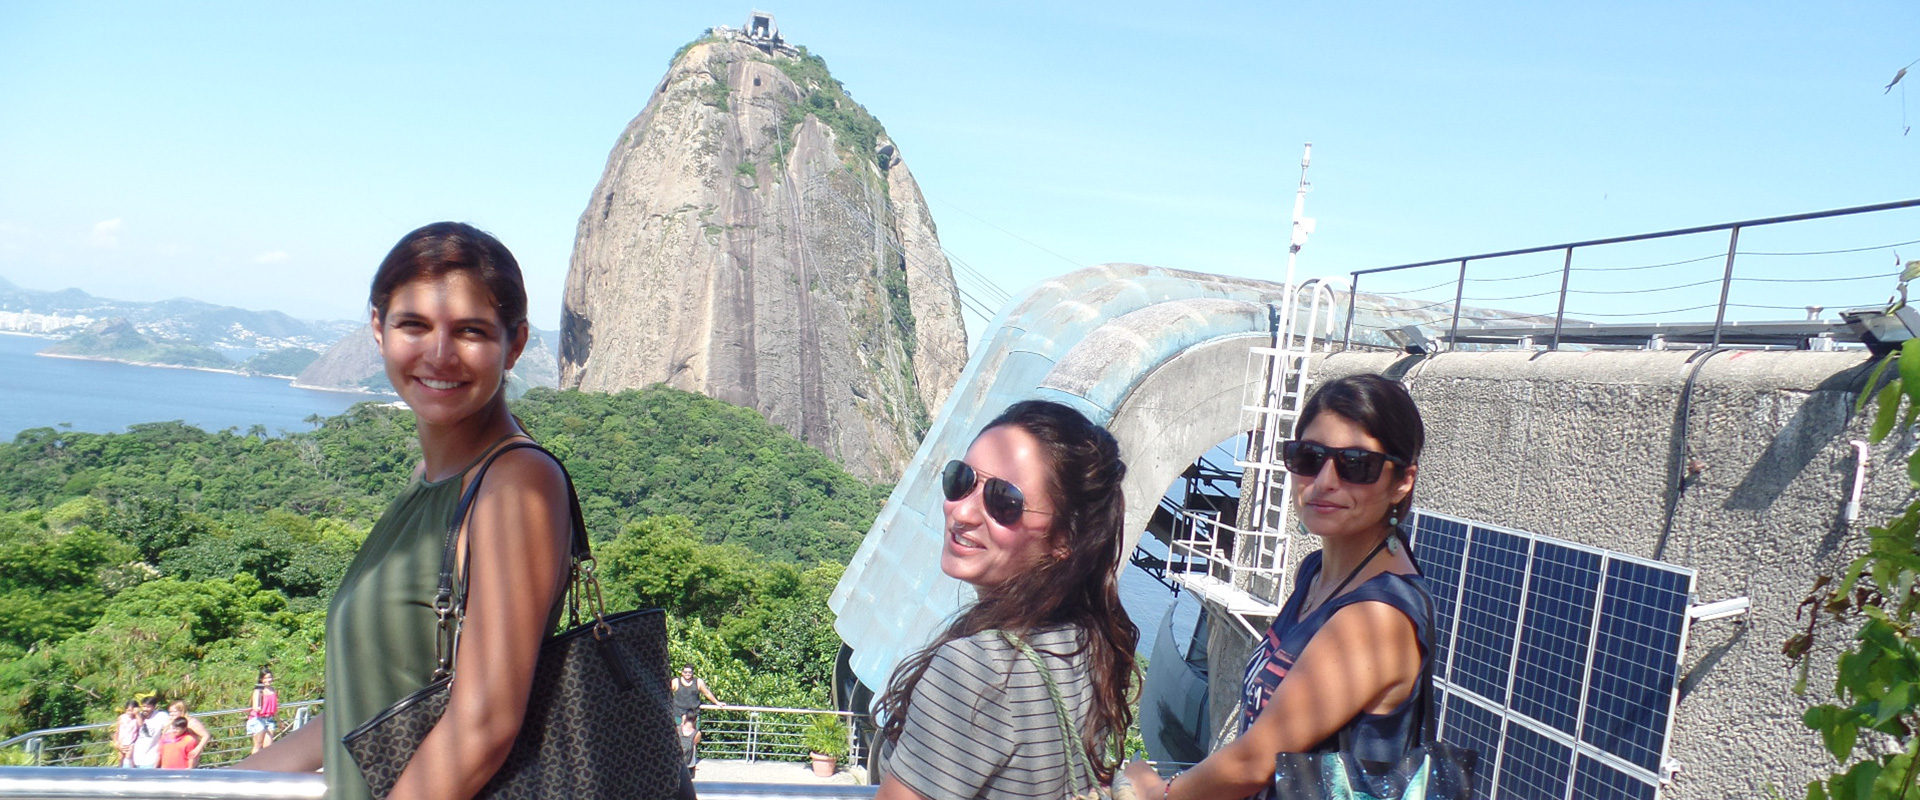 Live learning: Portuguese immersion in Brazil. Students learning Portuguese at Pão de Açúcar.